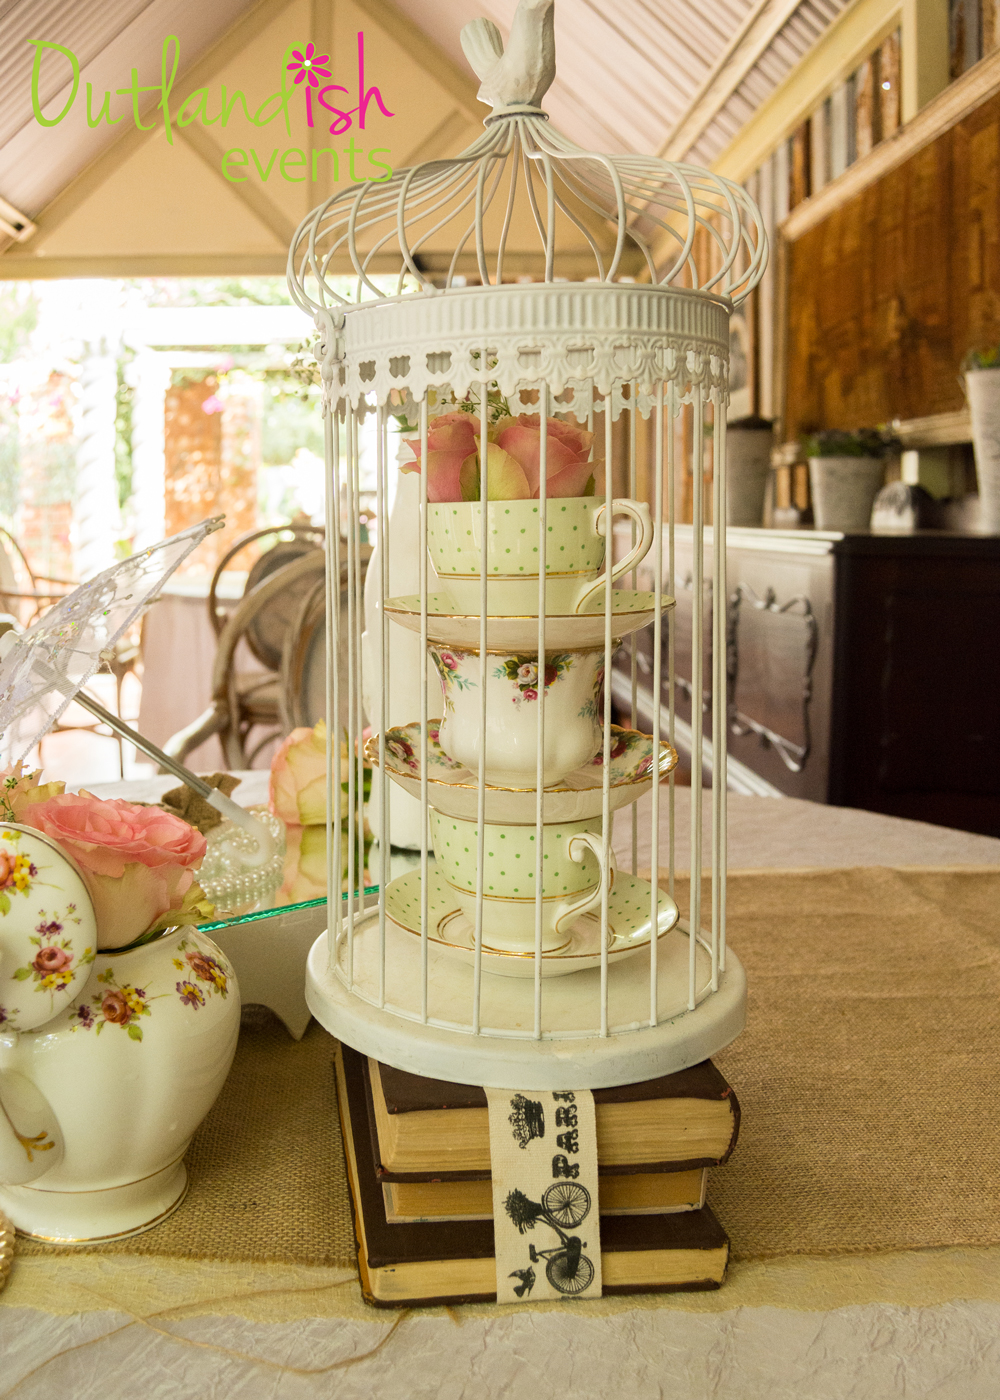 Outlandish Events Signature Themed Event - The Vintage Baby Shower